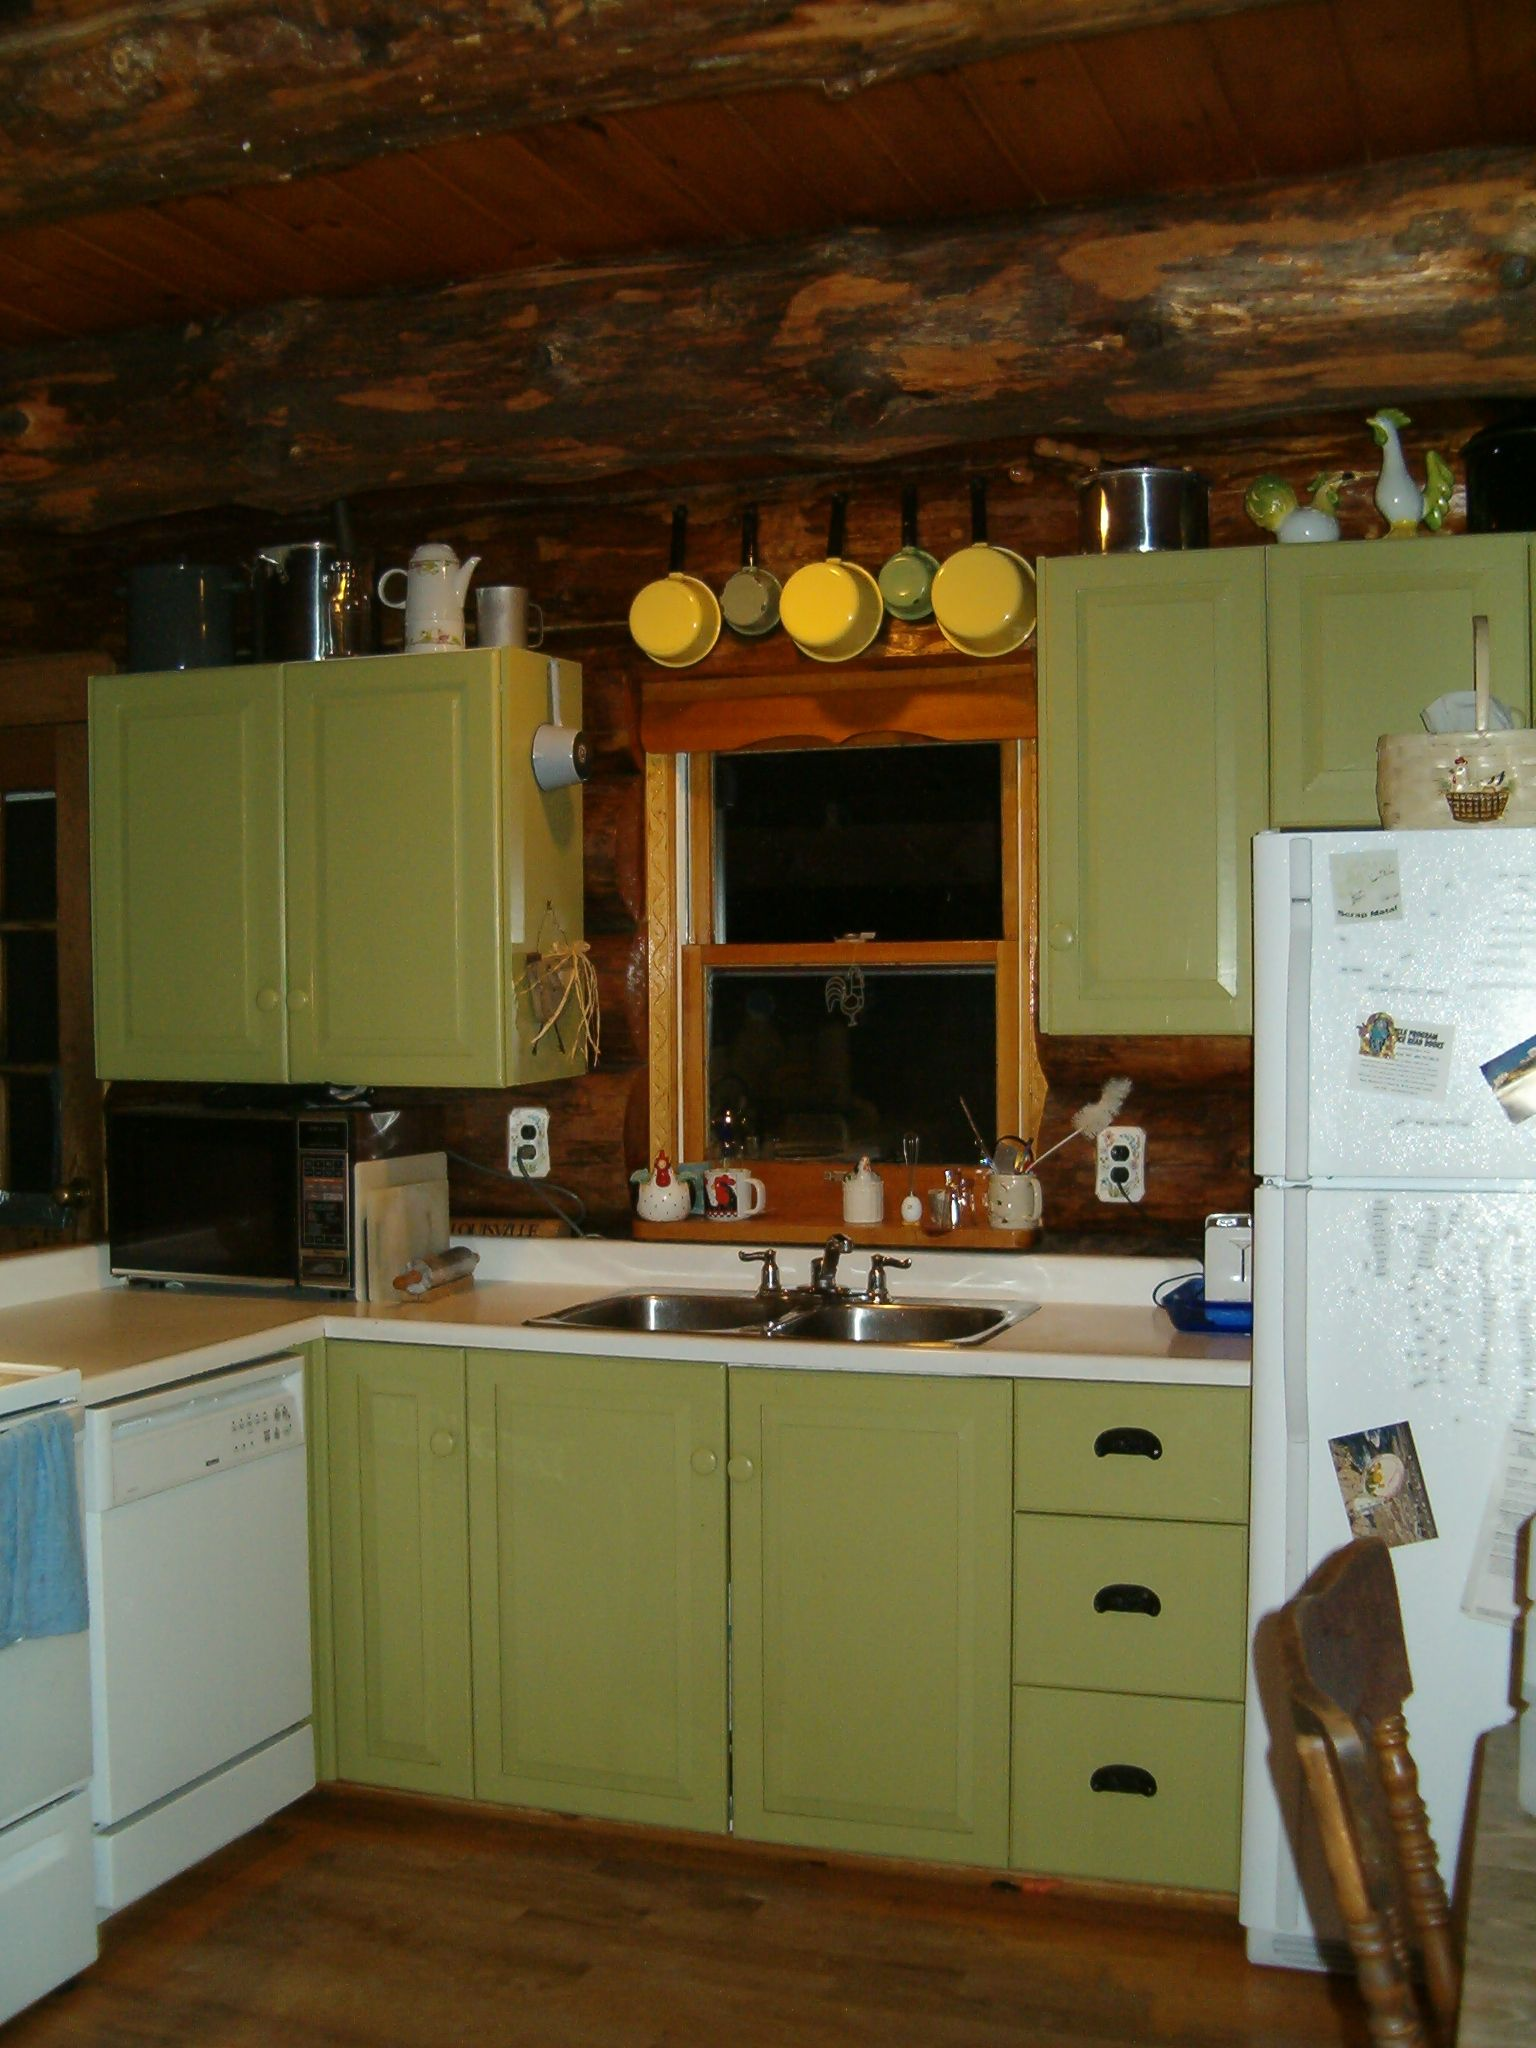 gray kitchen cabinets benjamin moore ashwood moss year of clean water rh yearofcleanwater org